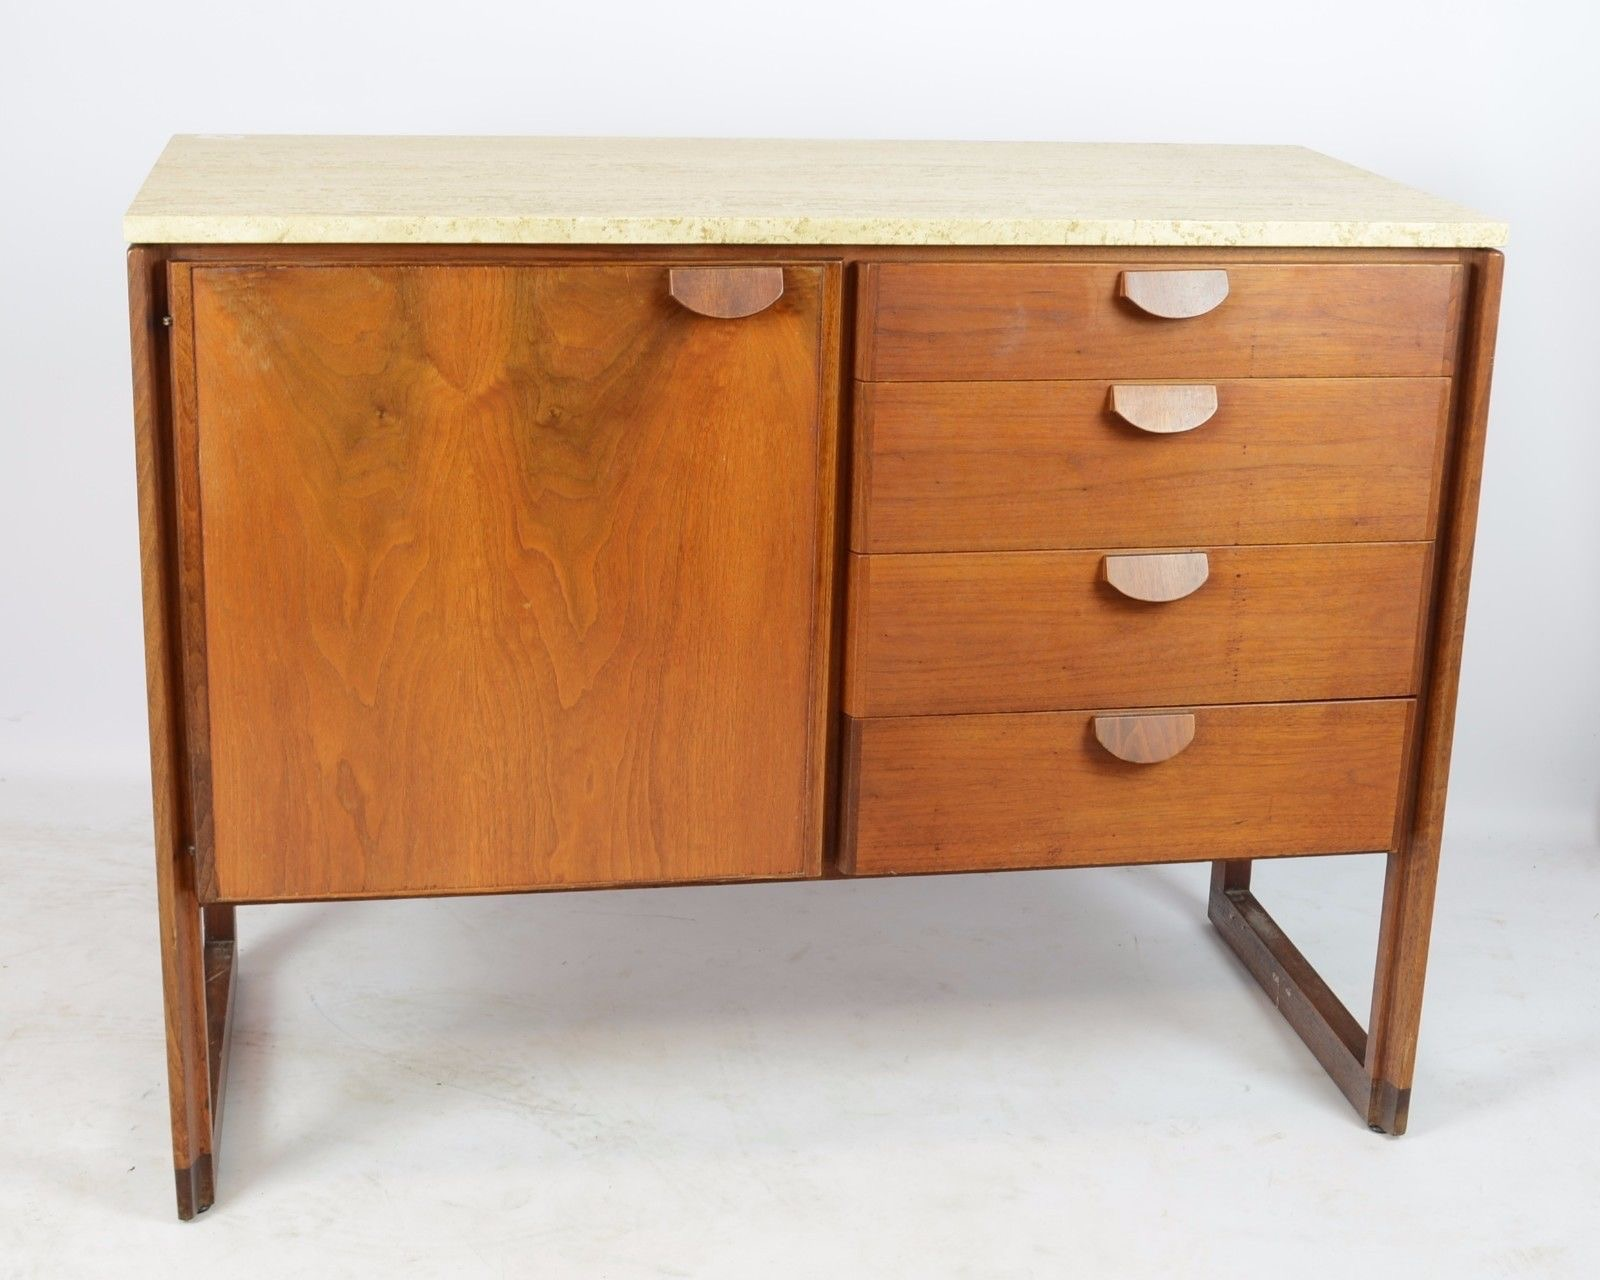 Rare Set Of 3 Office Credenzas By Jens Risom Design. There Are Lots More  Pictures